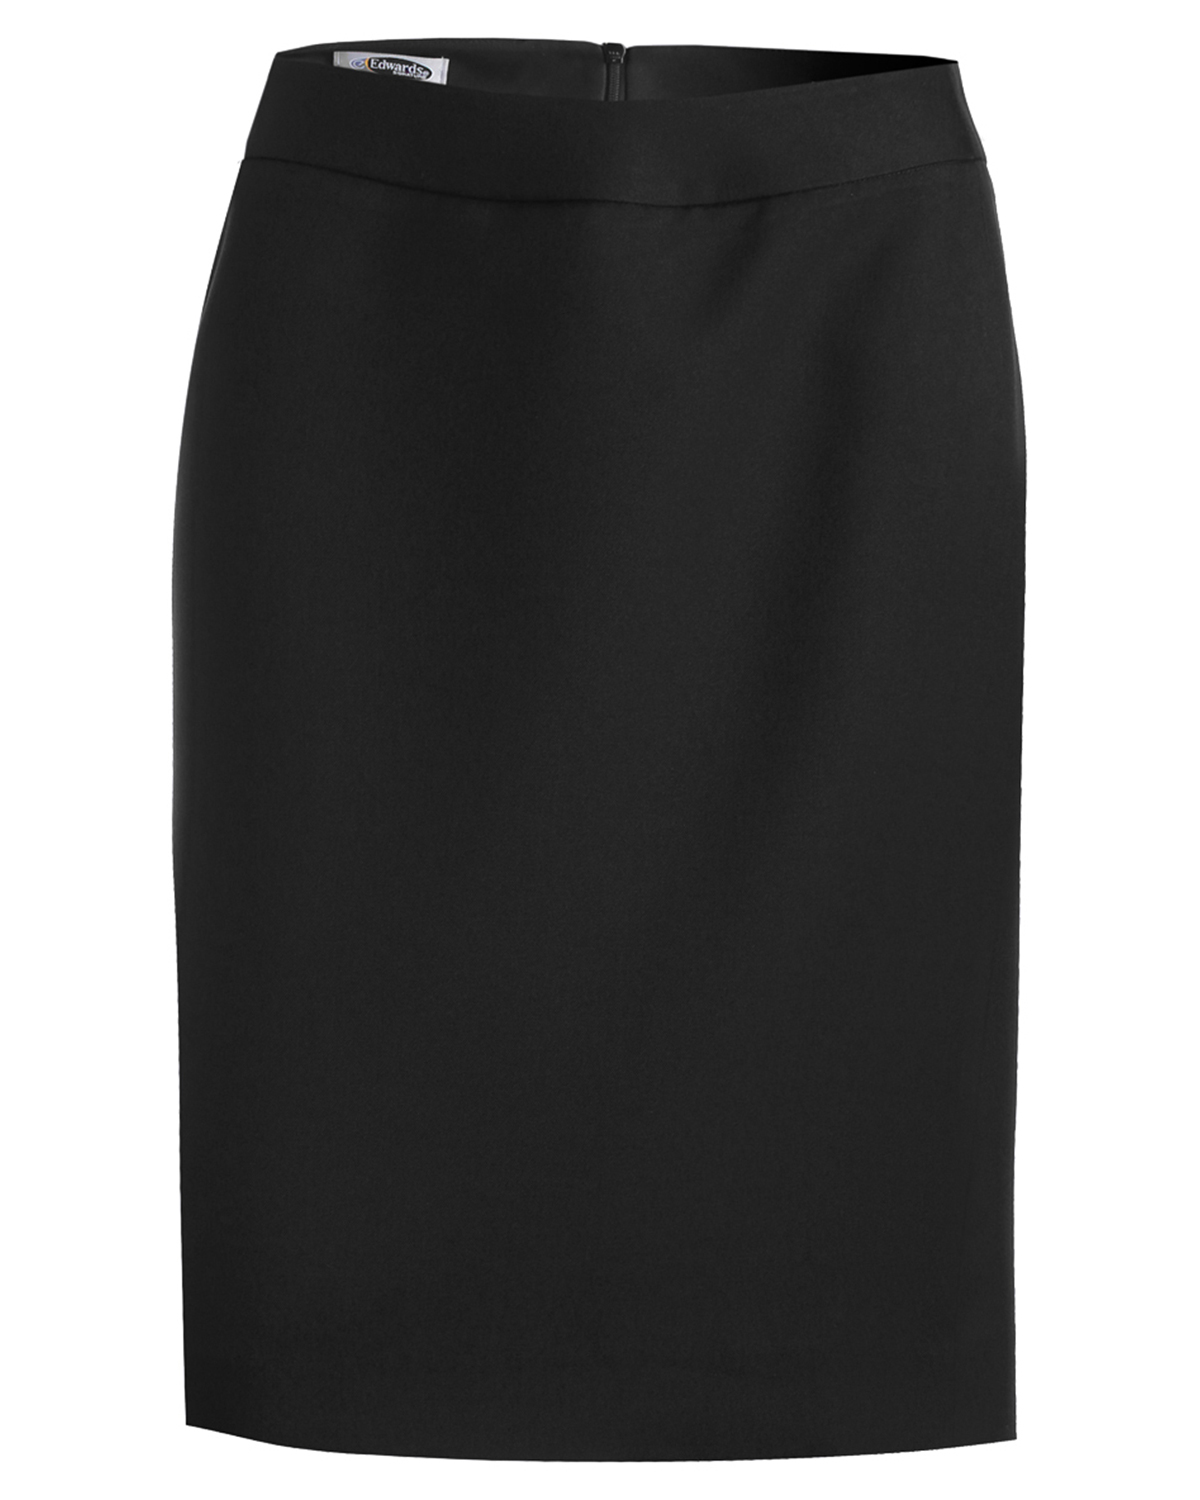 Edwards 9725 Women's Synergy Washable Skirt at GotApparel